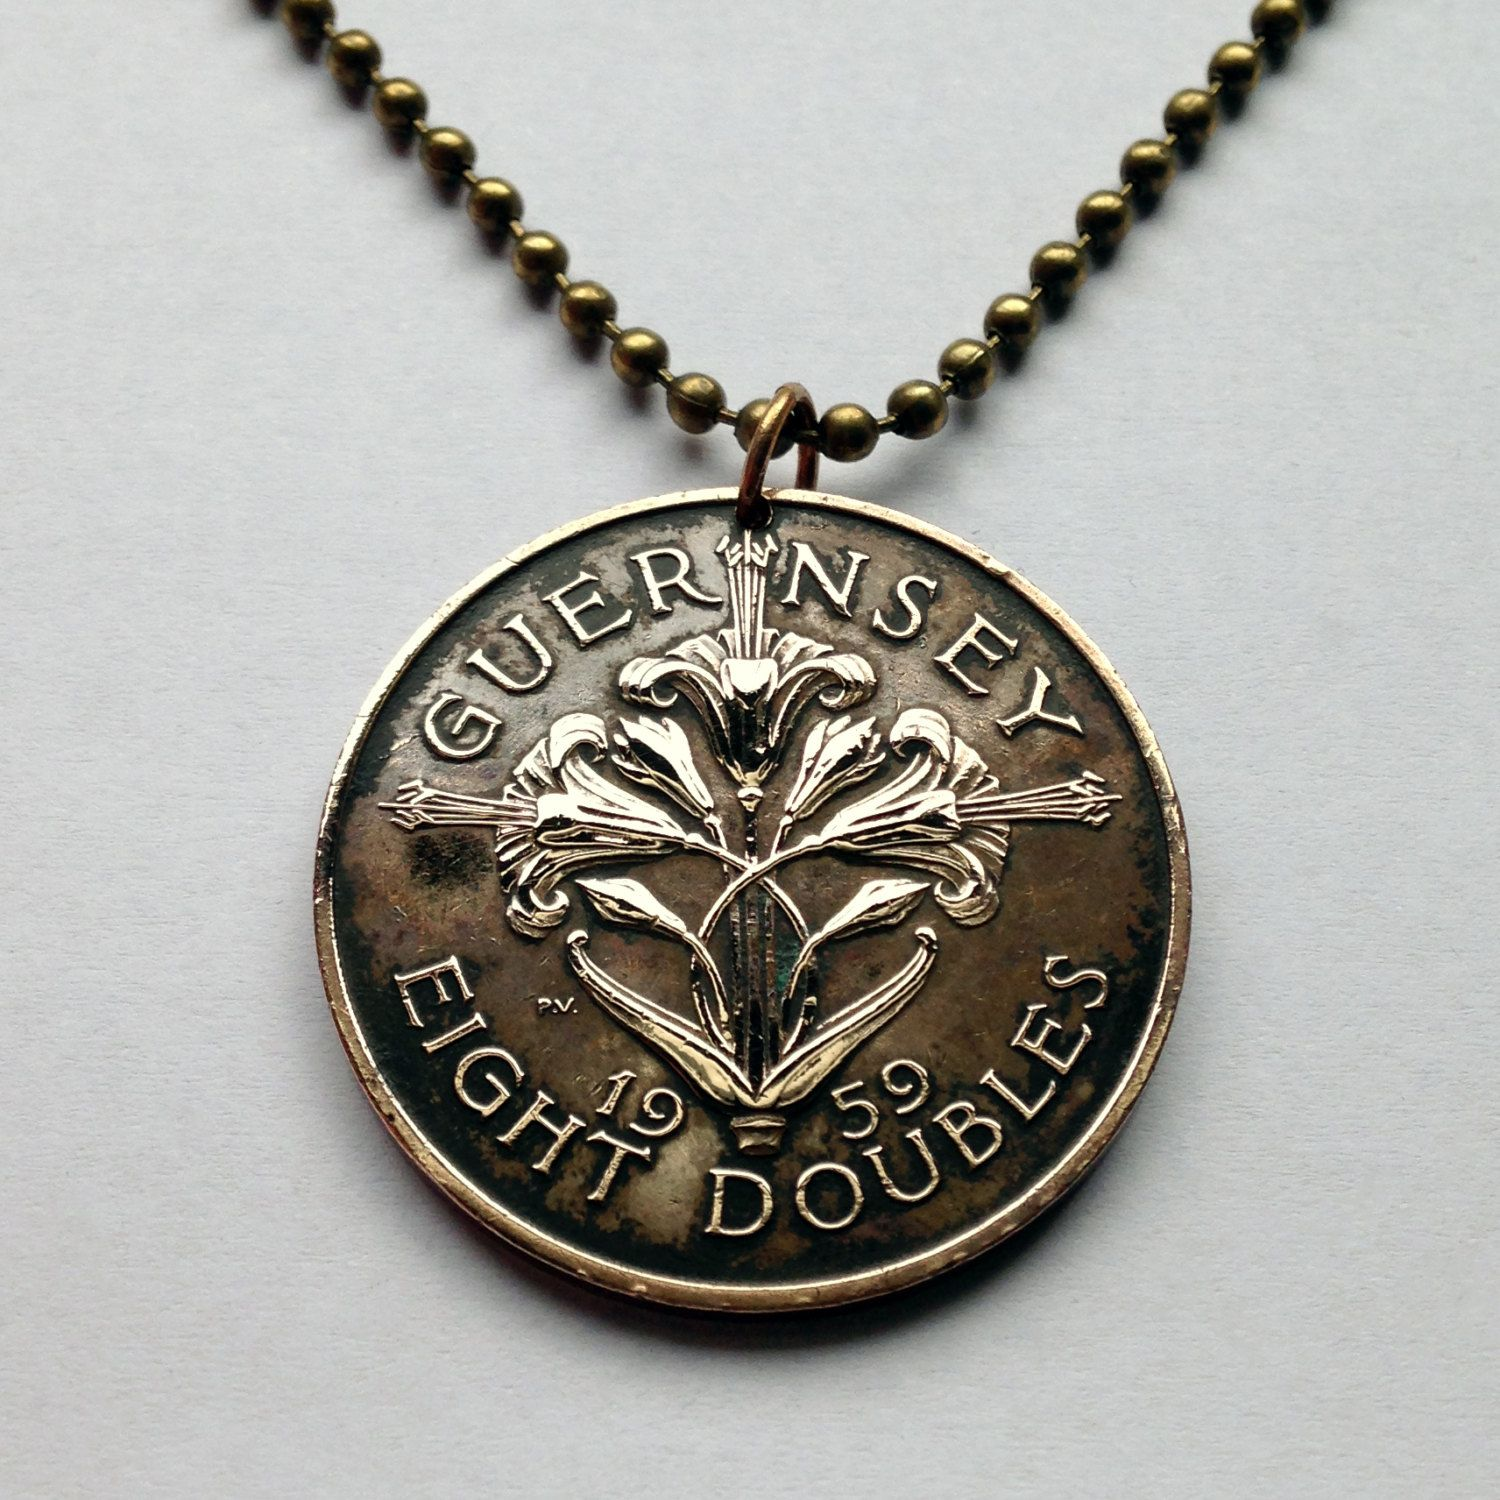 1959 Uk Bailiwick Guernsey 8 Doubles Coin Pendant Necklace Jewelry Lily Lillies Flowering Flower Plant Bouq Coin Pendant Necklace Pendant Necklace Coin Pendant